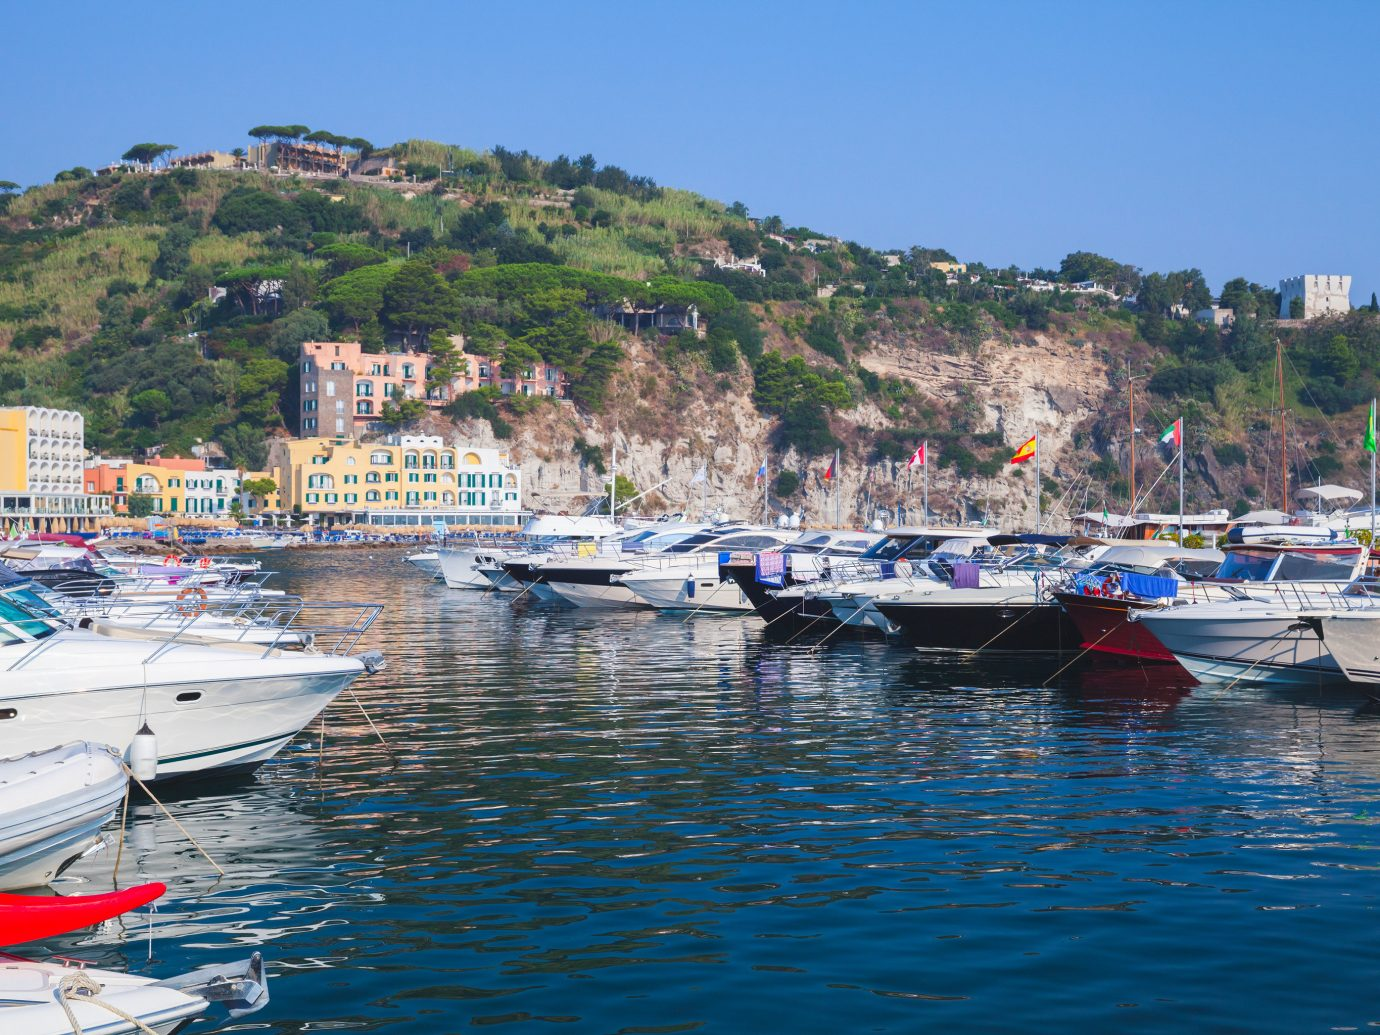 Boats in harbor of Lacco Ameno in Italy